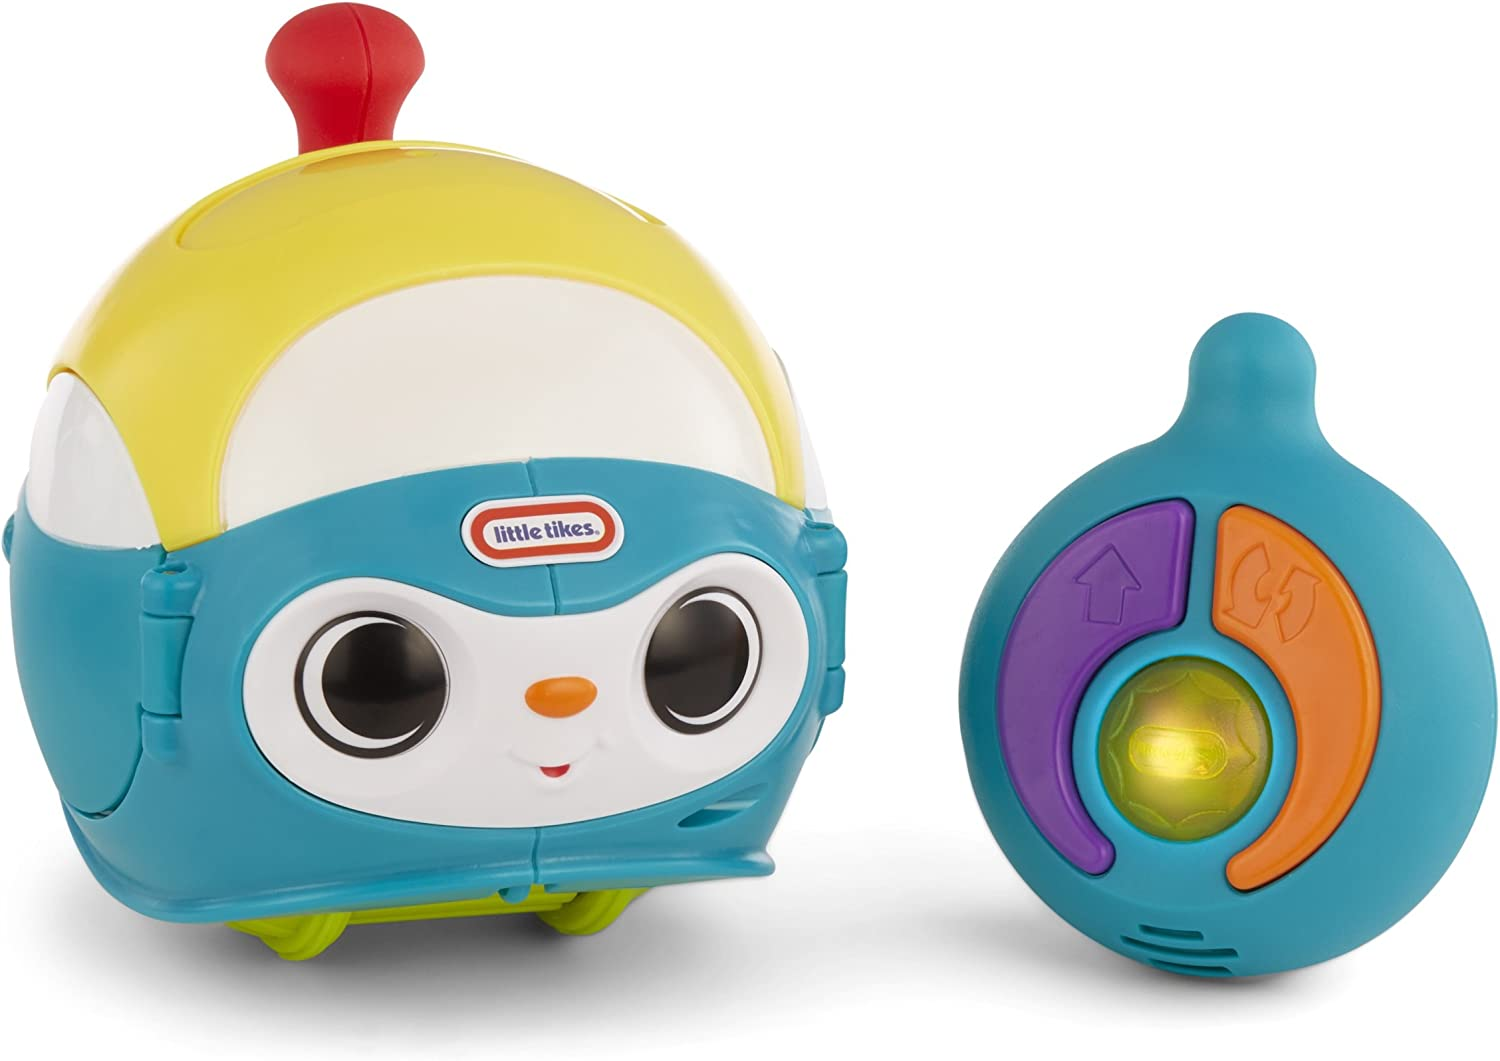 Little Tikes Spinning RC - Blue